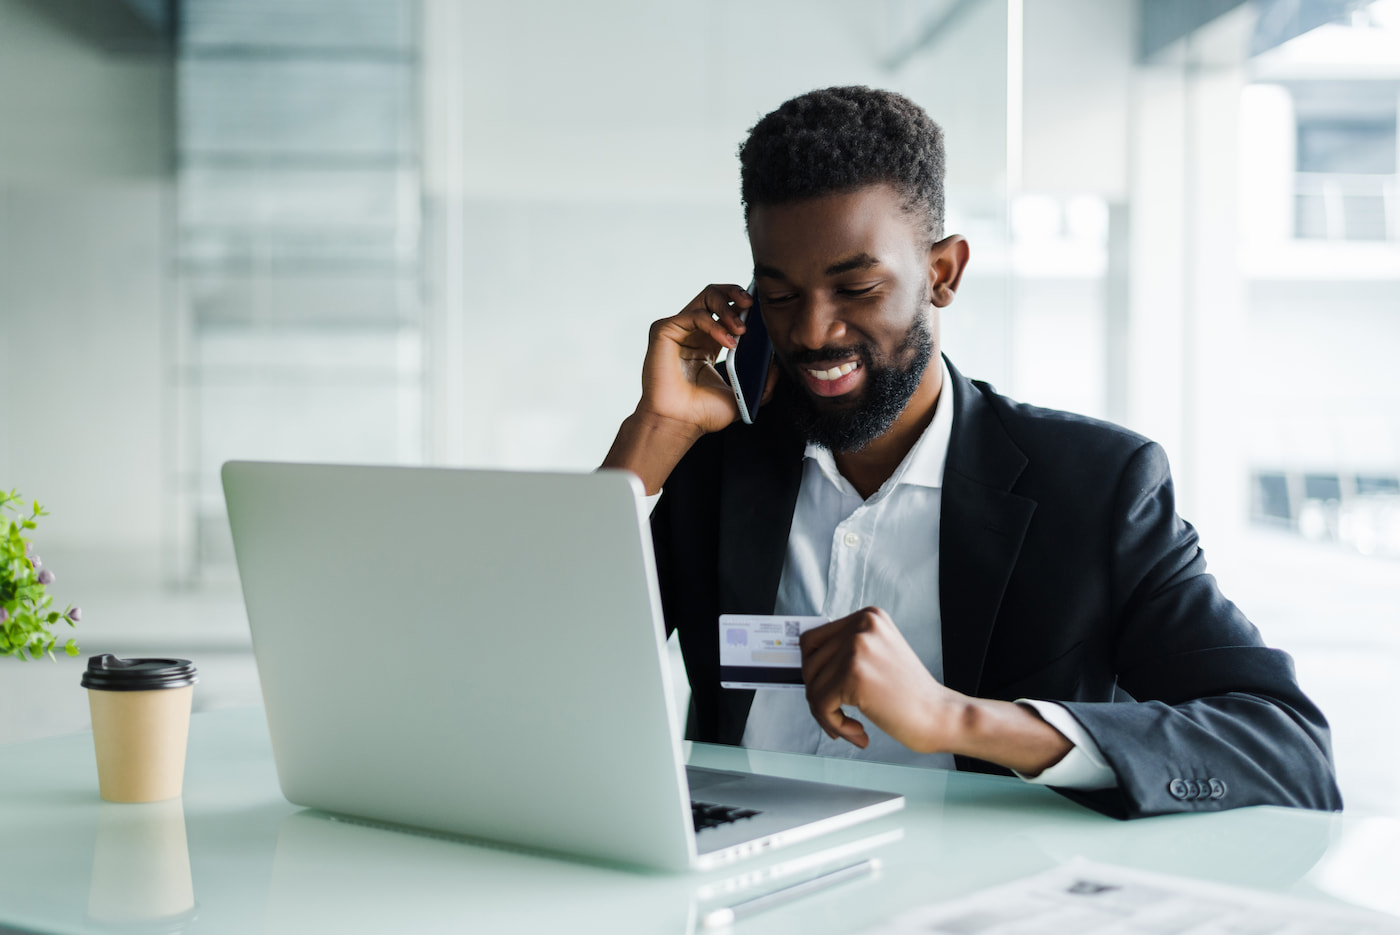 African American businessman on phone with credit card